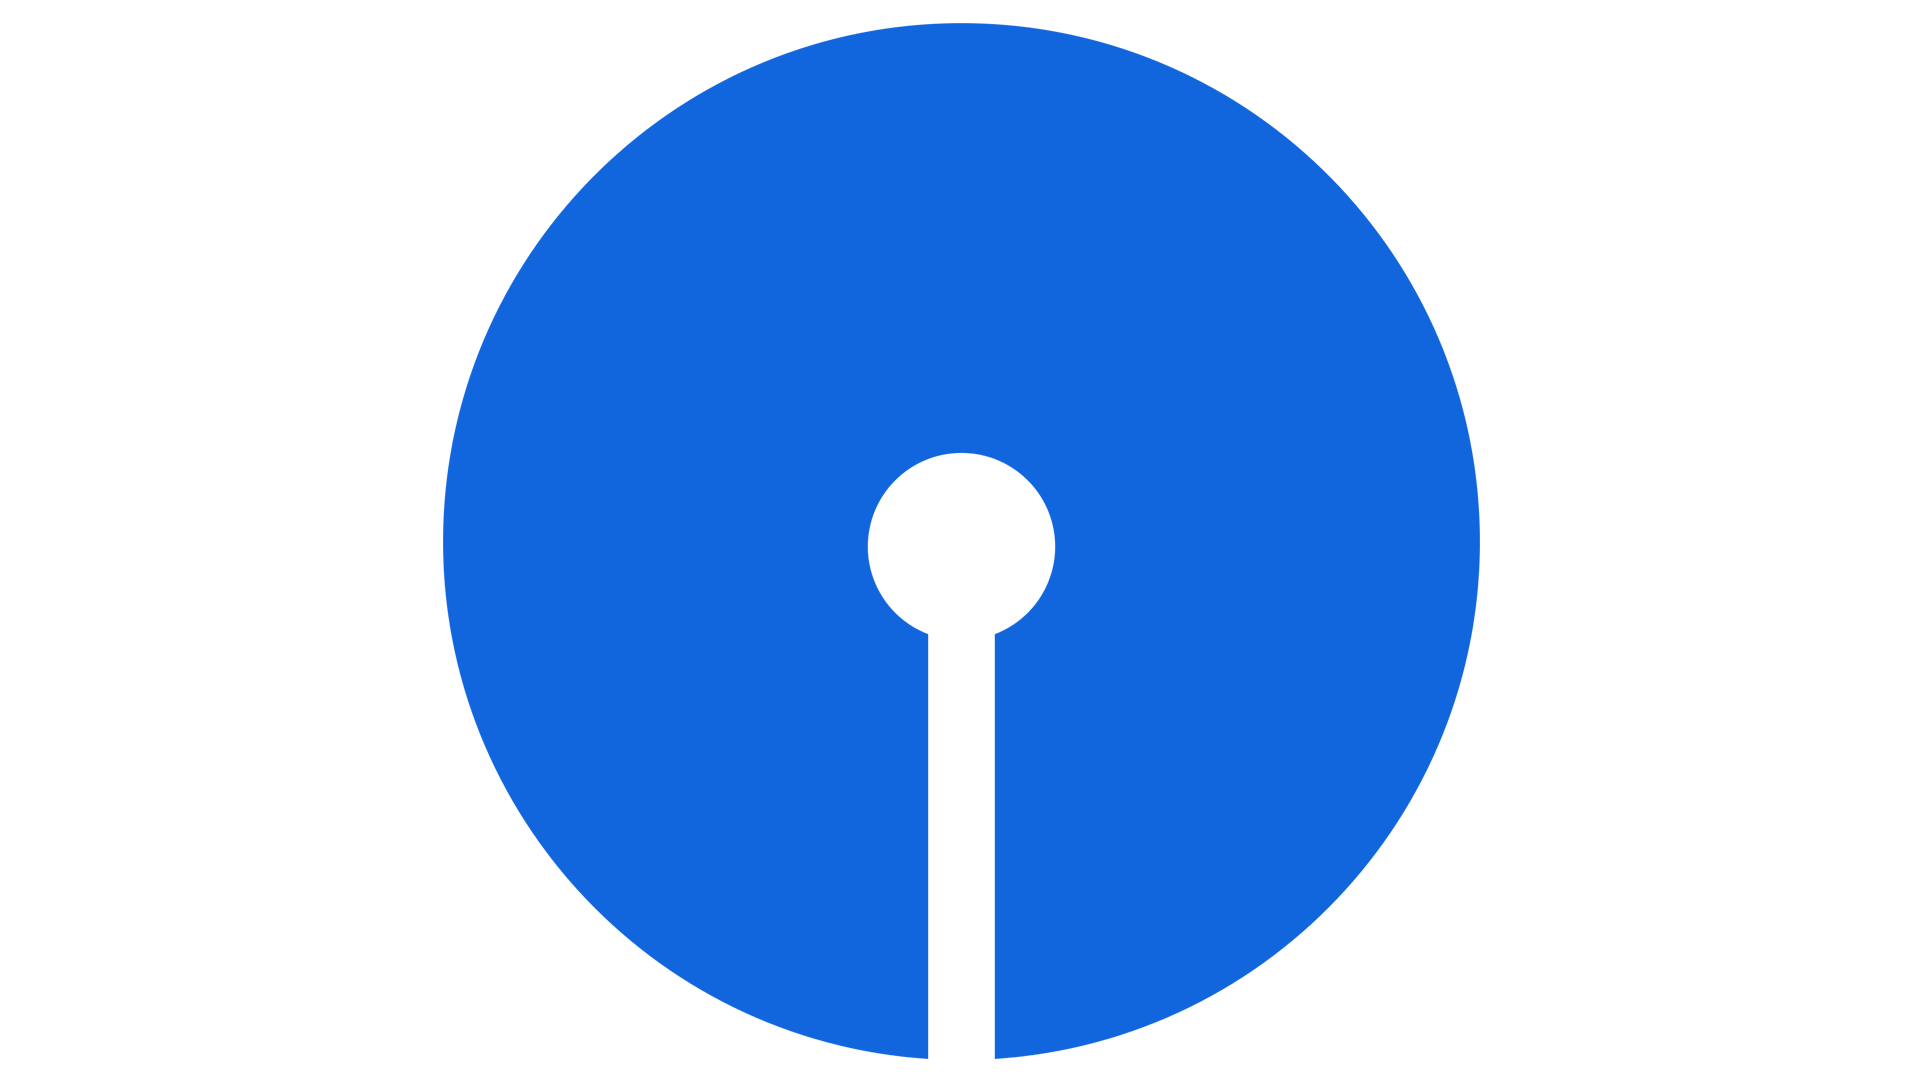 sbi logo sbi symbol meaning history and evolution #33237